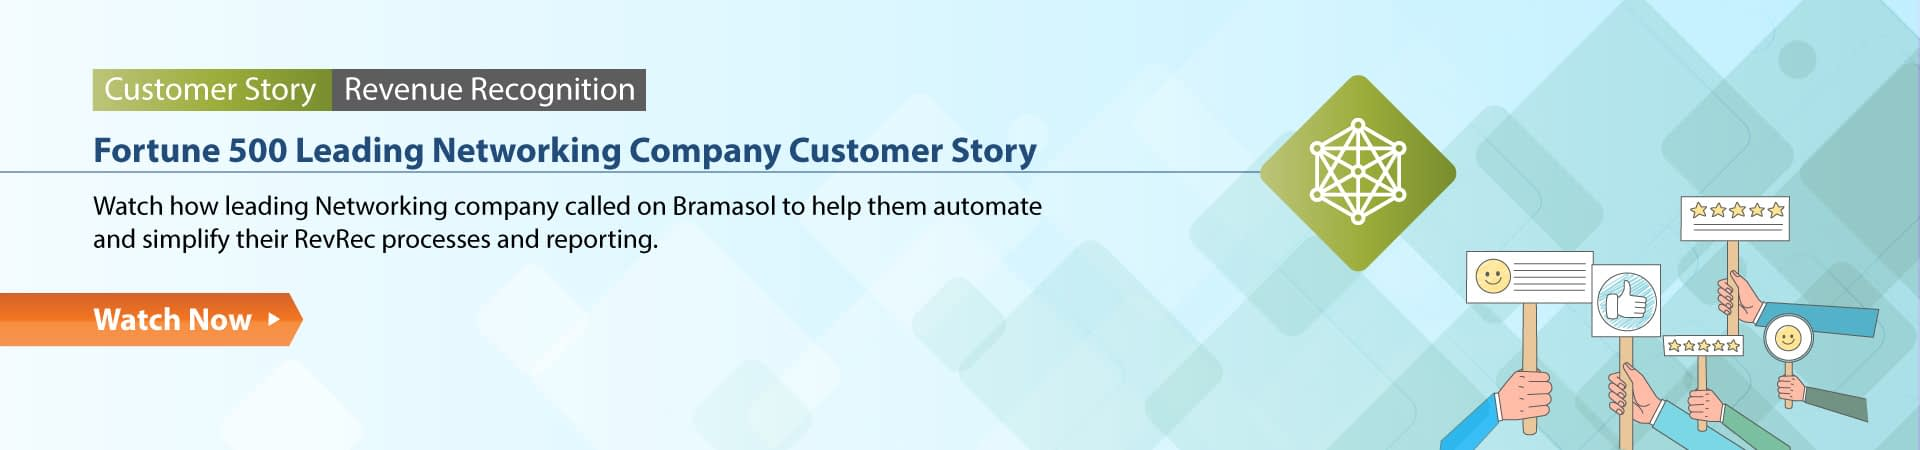 Fortune 500 Leading Networking Company Customer Story